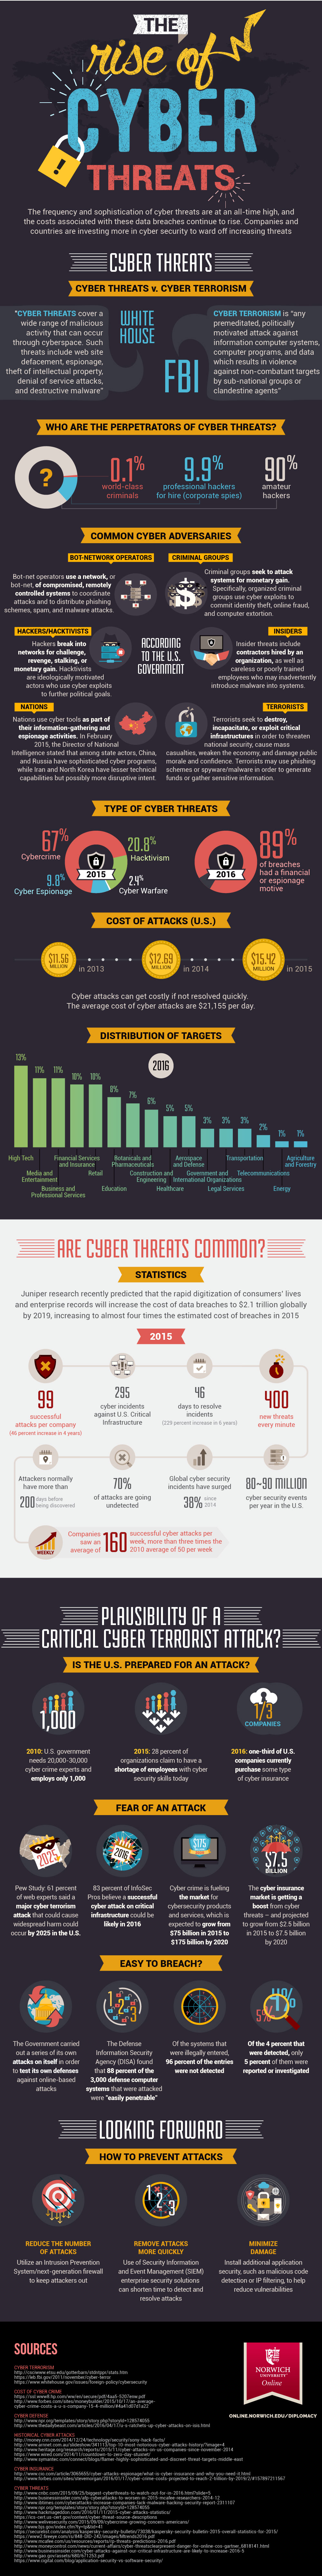 infographic on the rise of cyber threats